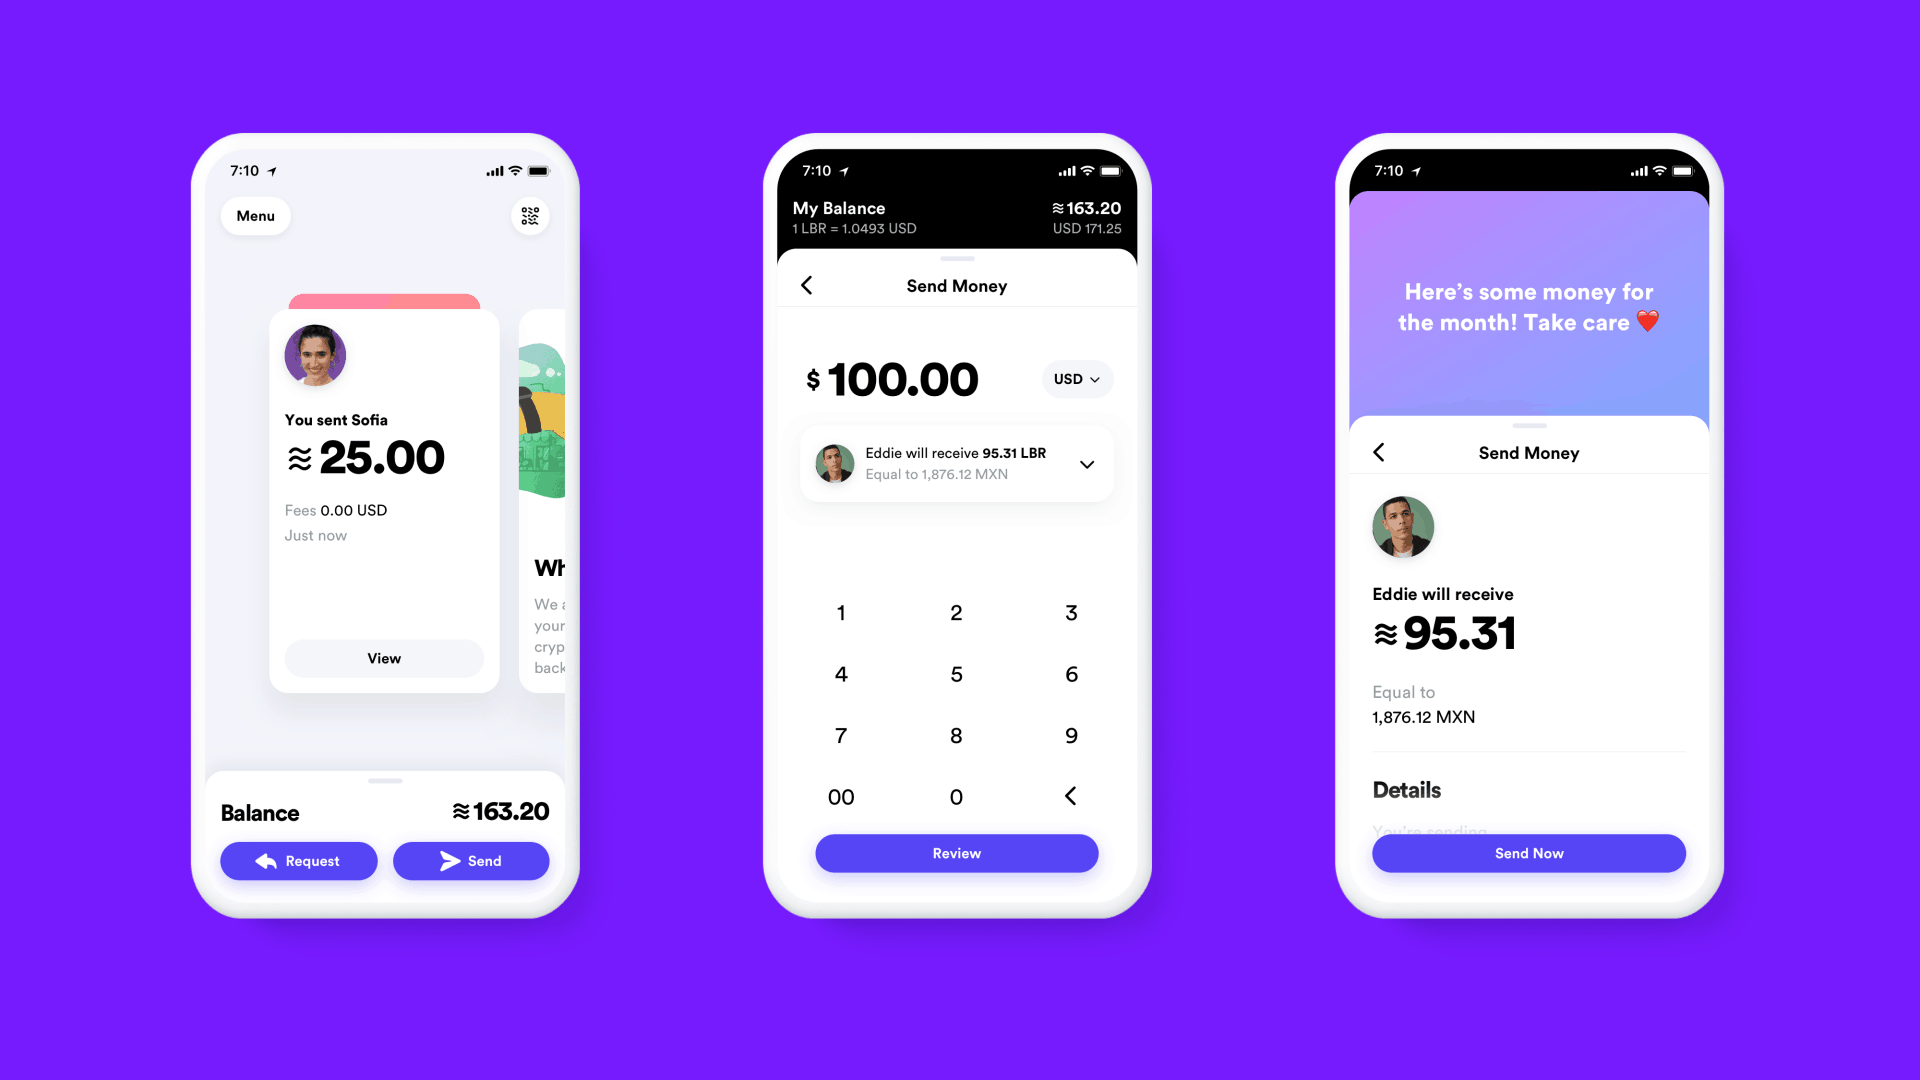 In Light of FINMA Guidance on Stablecoins, Libra Will Pursue Payment System License